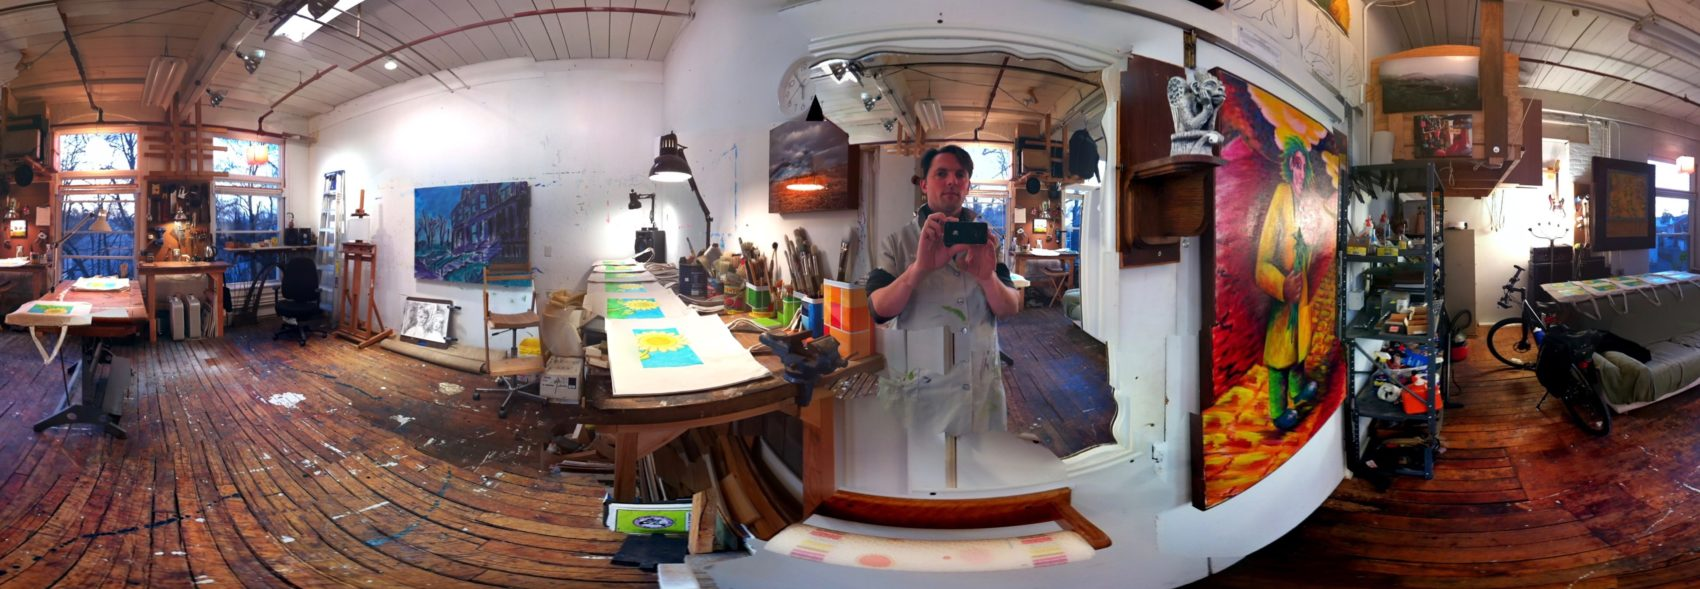 Trace Meek's art studio at One Cottage Street